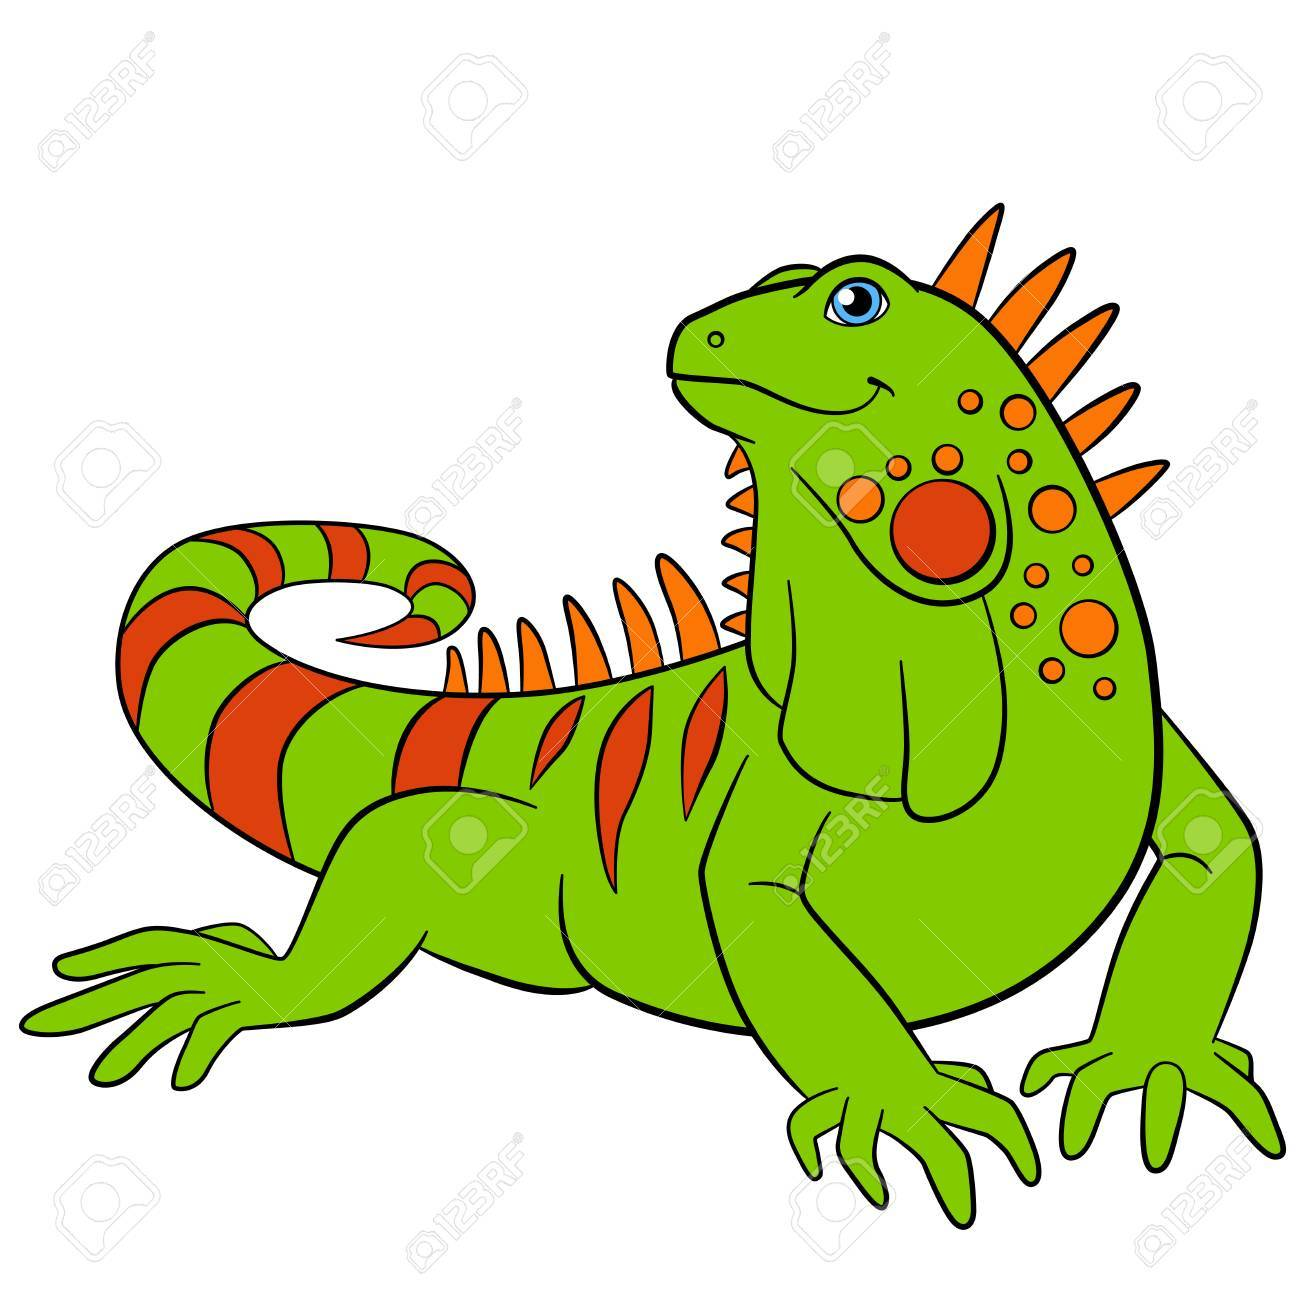 Cute green iguana sits and smiles. Stock Vector - 62894630